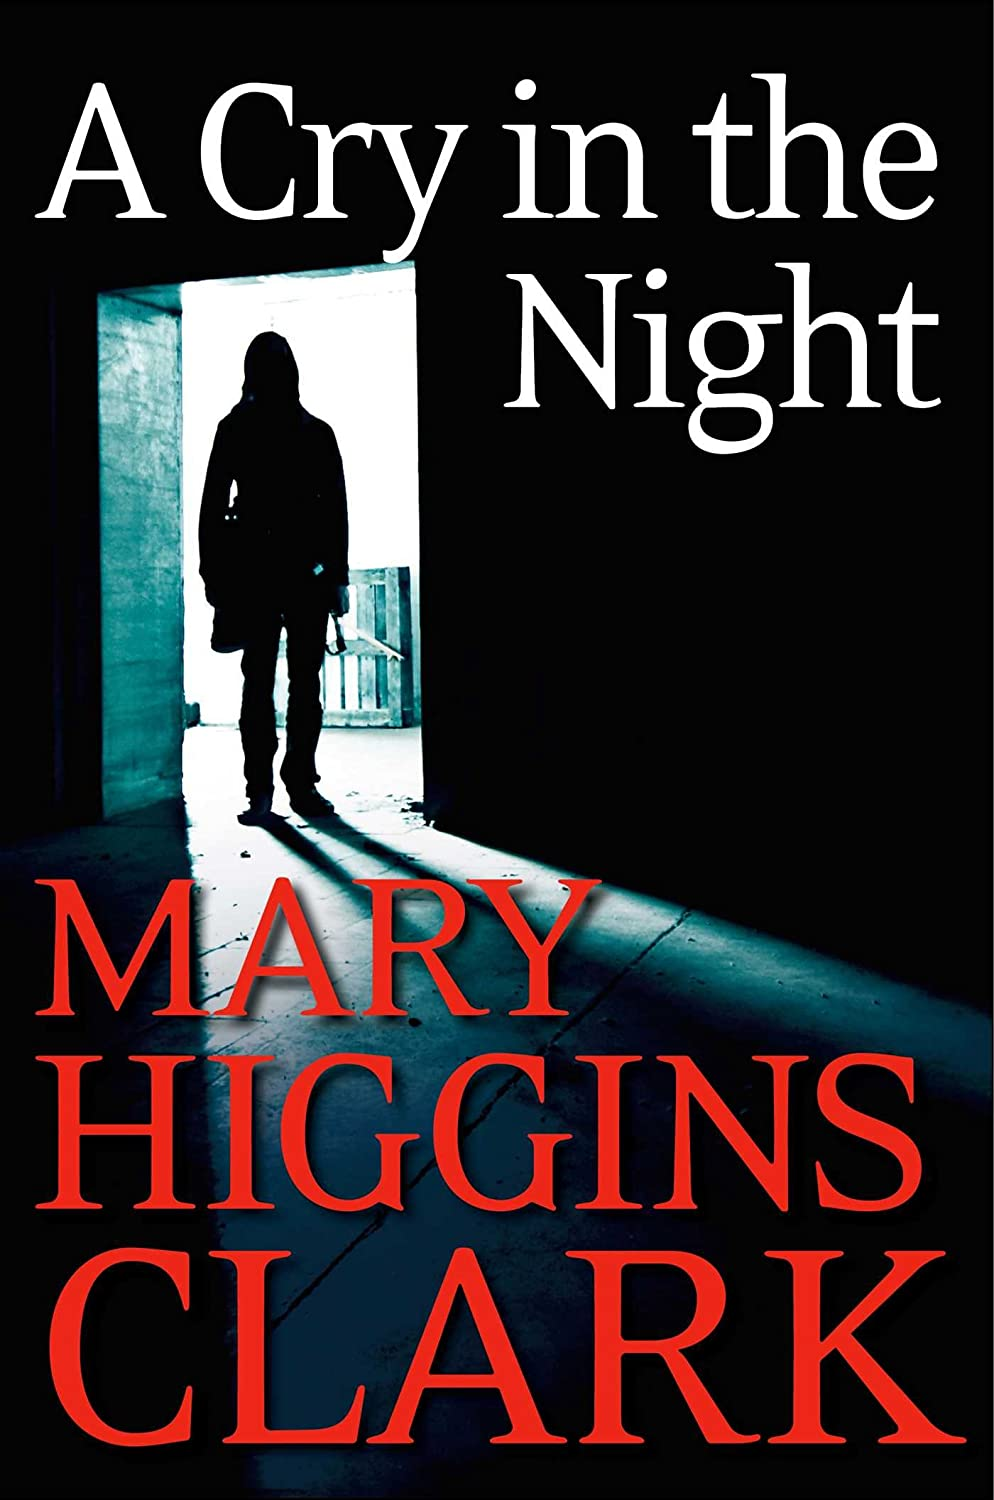 A Cry In The Night (English Edition) eBook: Mary Higgins Clark ...